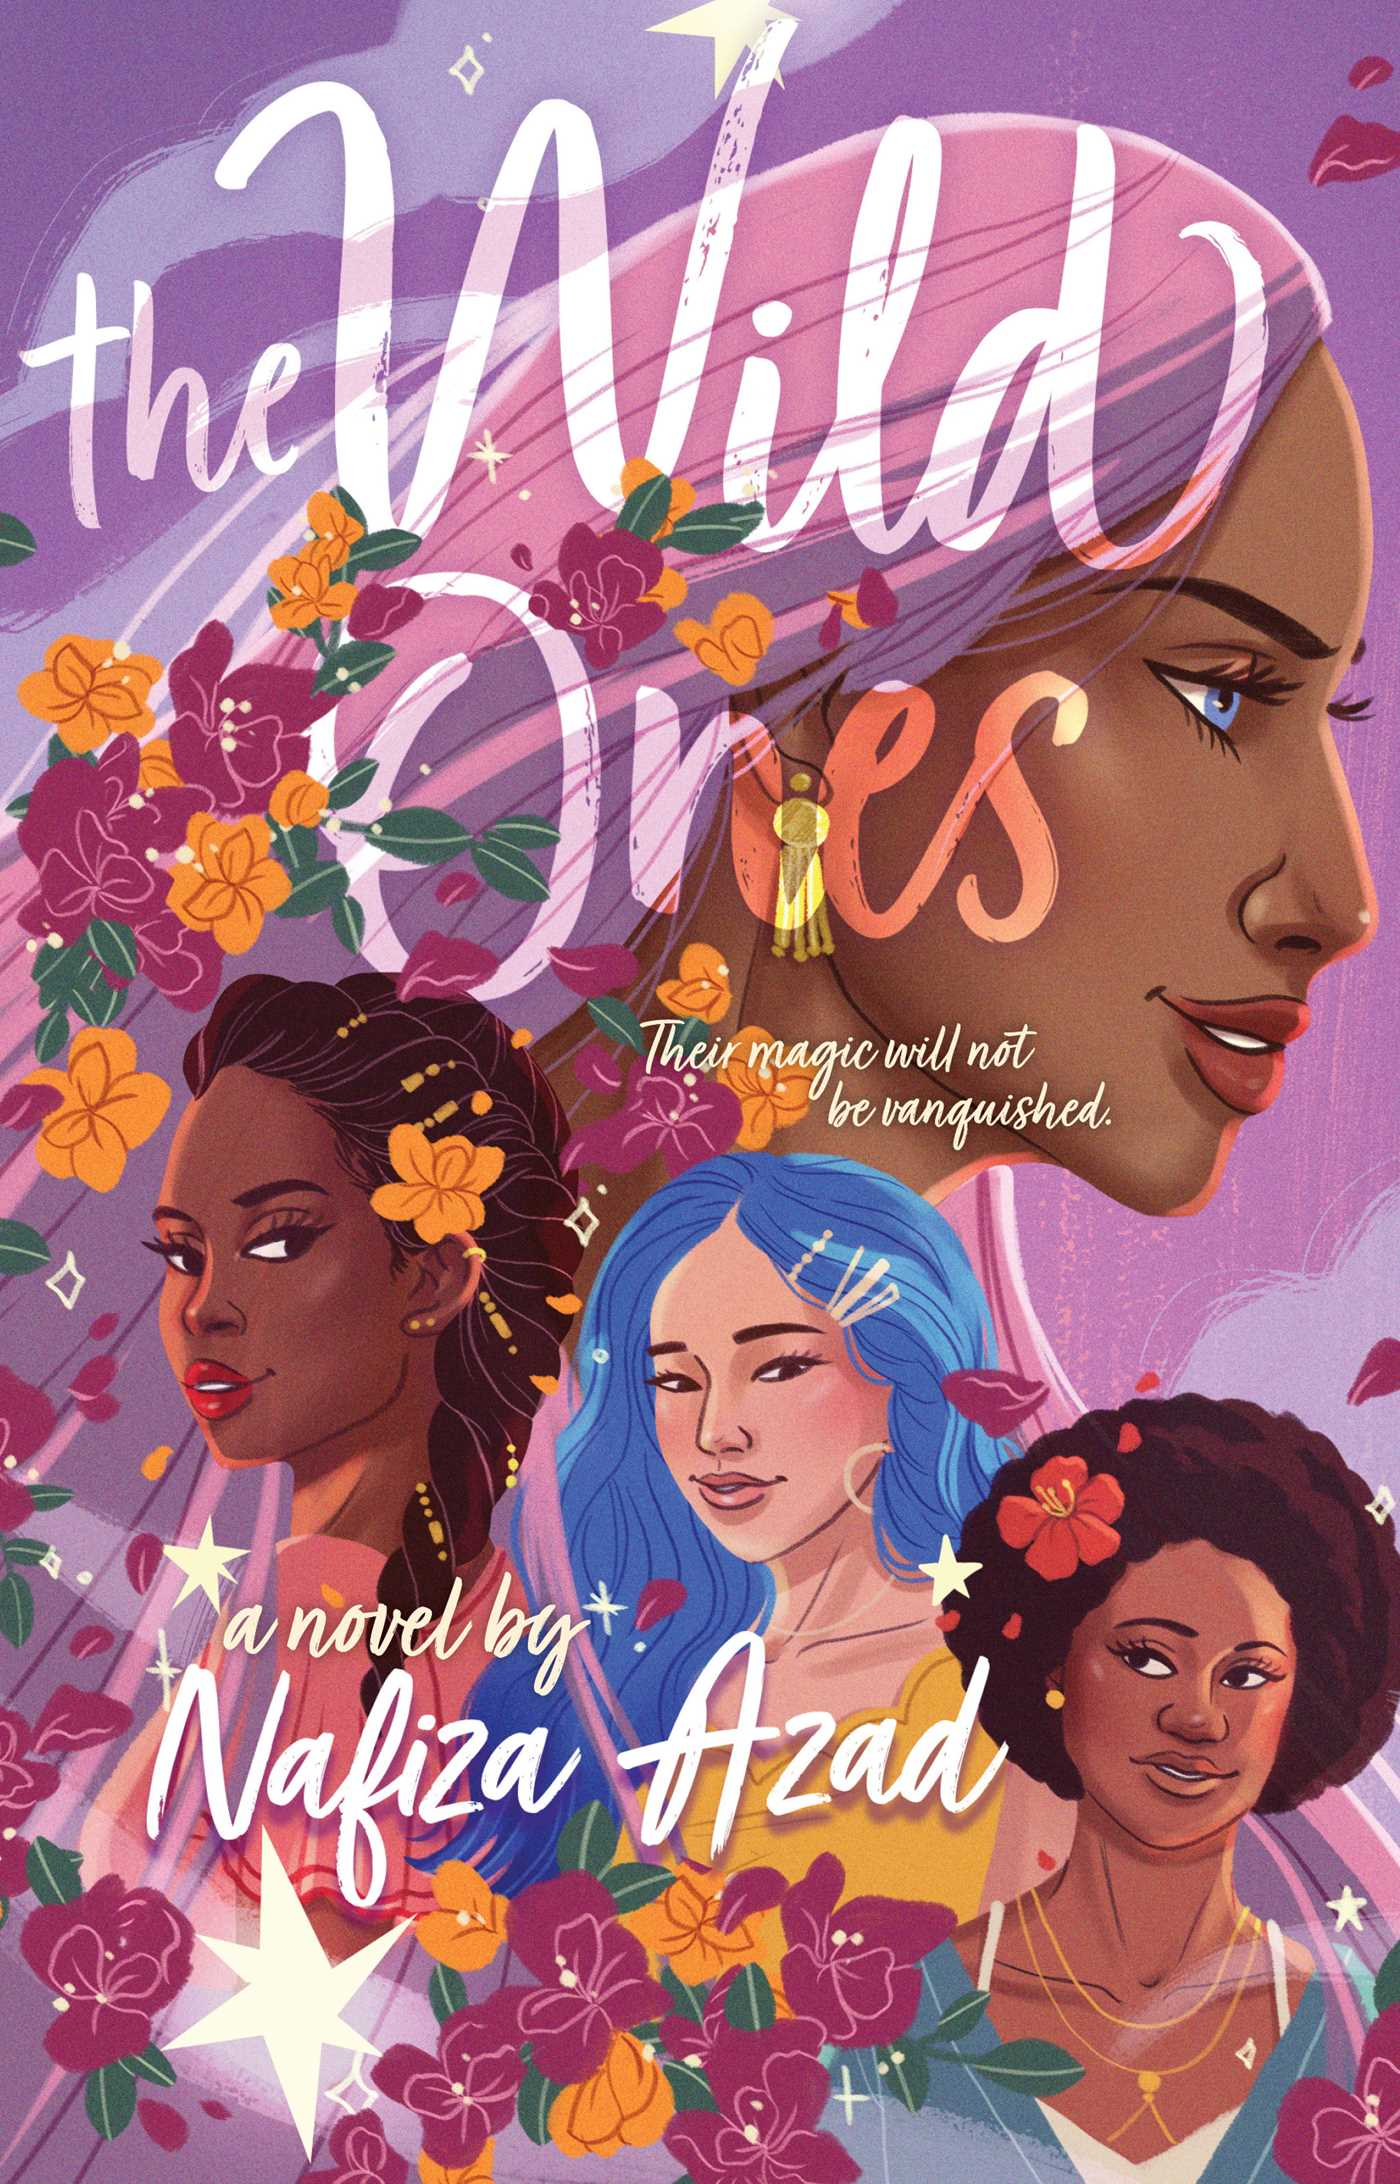 When Will The Wild Ones Release? Nafiza Azad 2021 New Releases